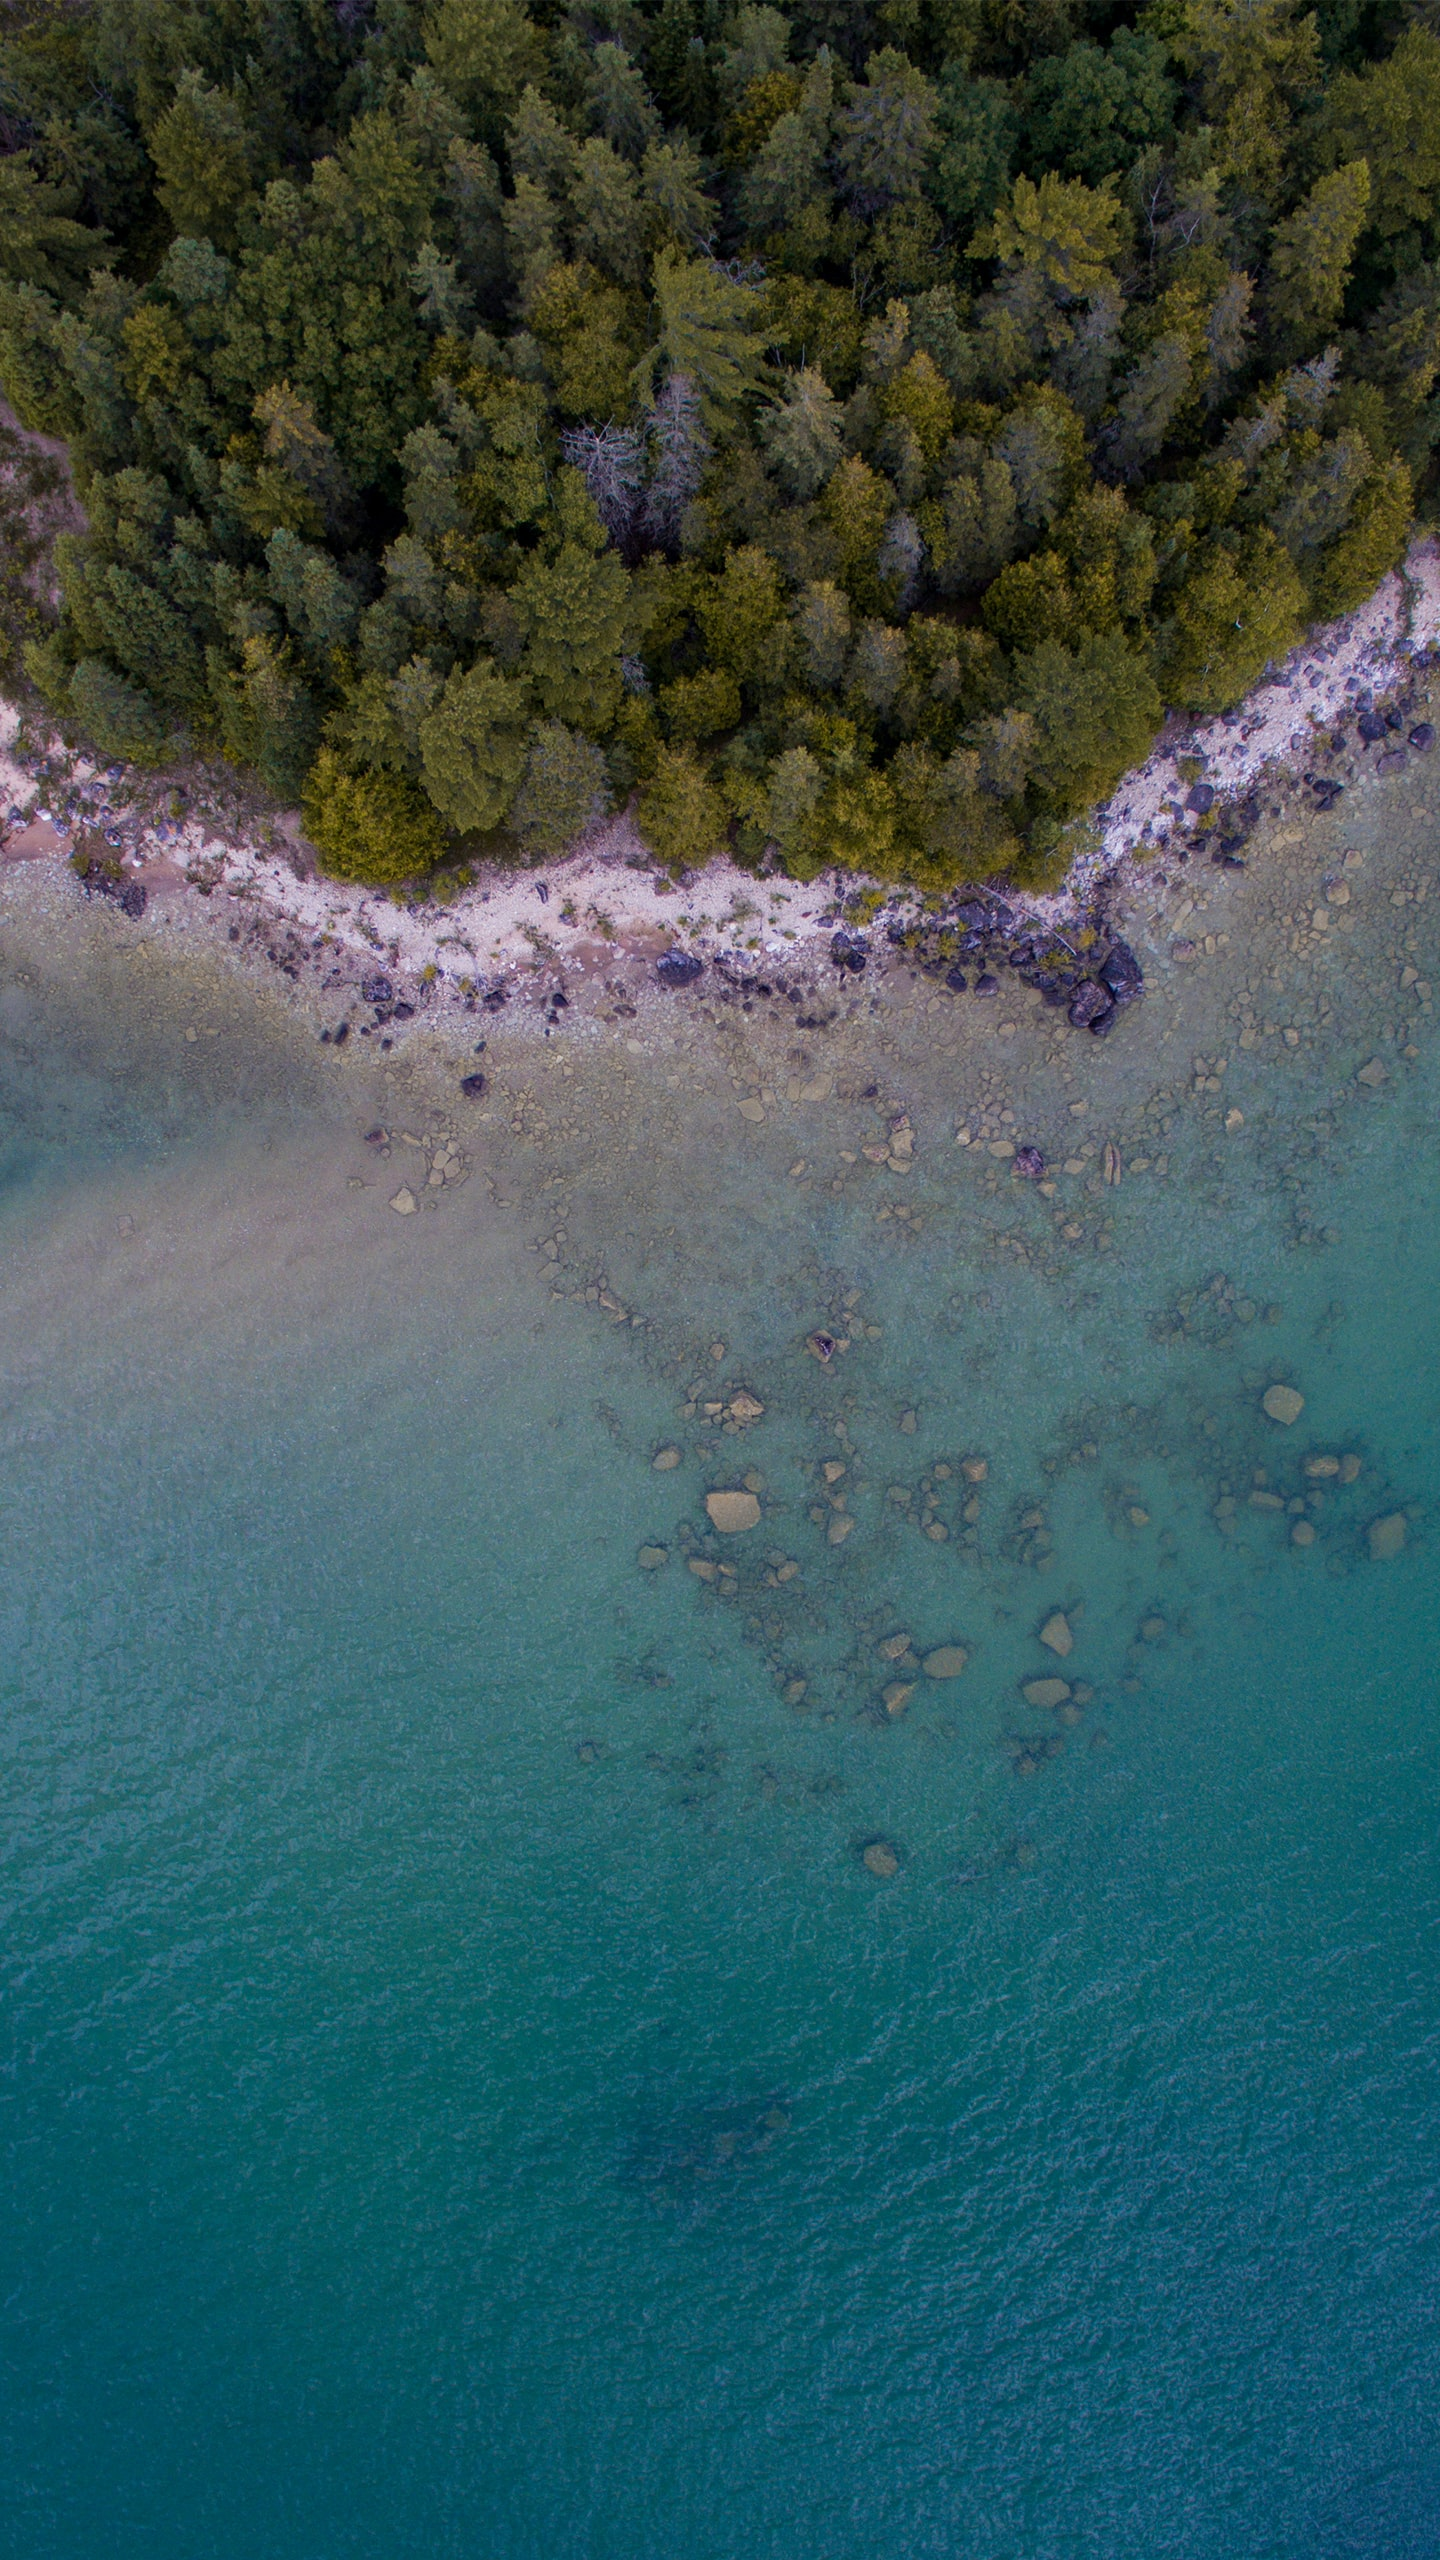 aerial photography of forest beside body of water at daytime